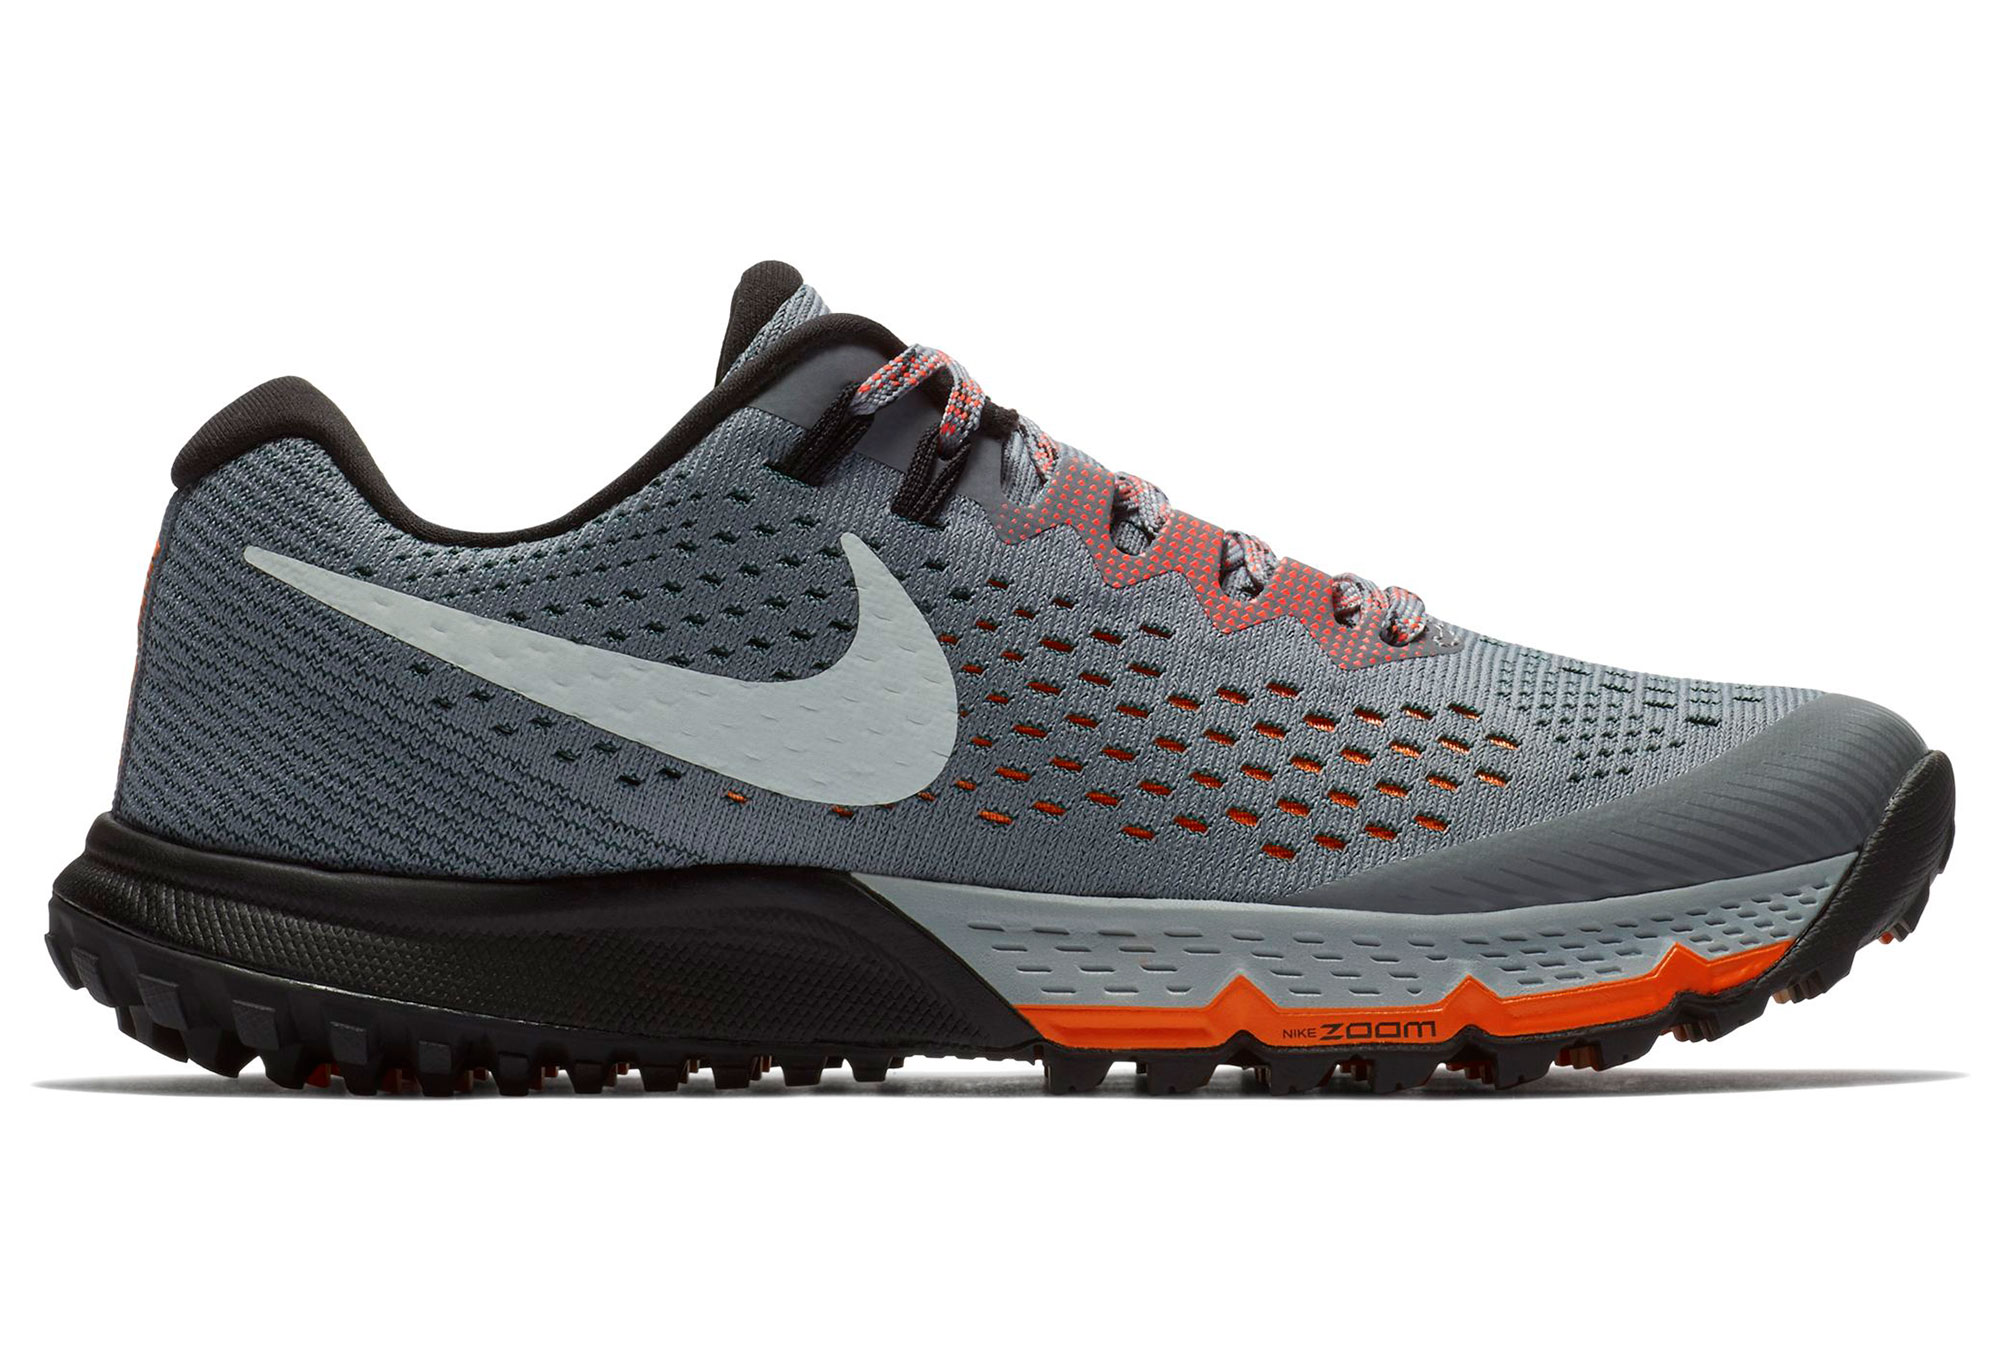 8bfb77a0f5e83 Nike Shoes Air Zoom terra Kiger 4 Grey Orange Women